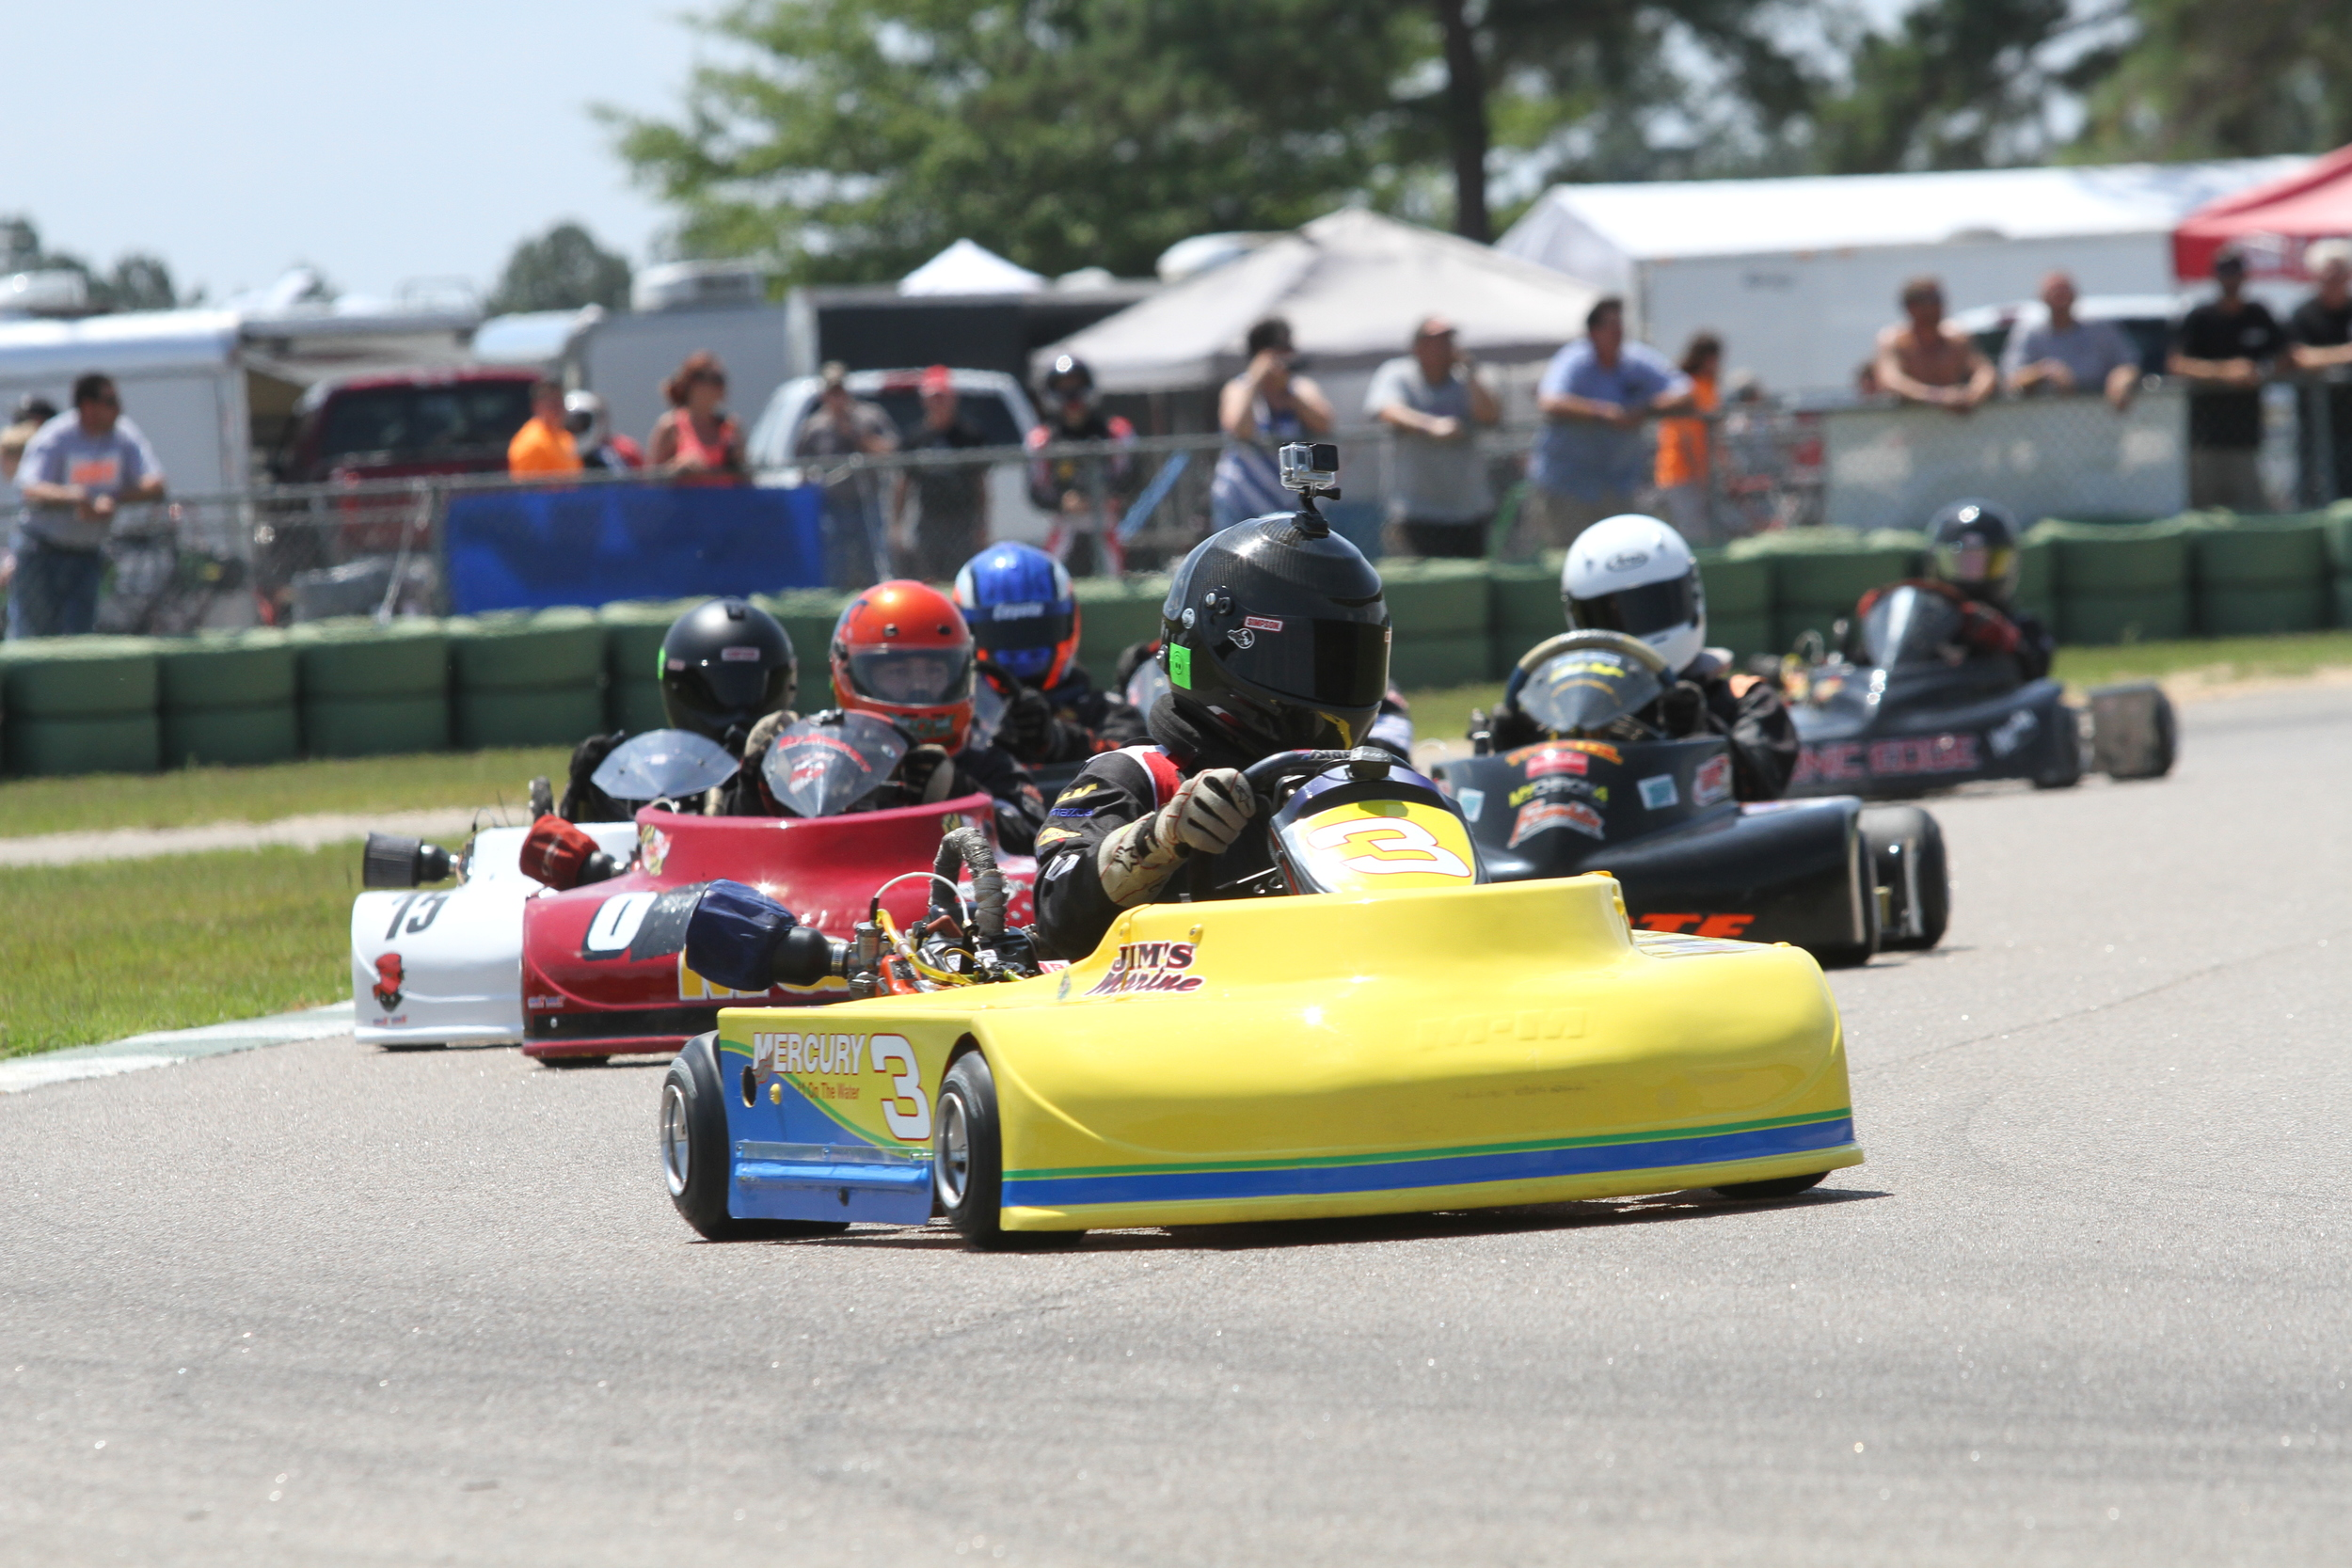 21 karts lined up for the Senior Pro Gas Money race, rounding out the  Friday on track activities. And for the second race in a row, Zach Linsell  found ...